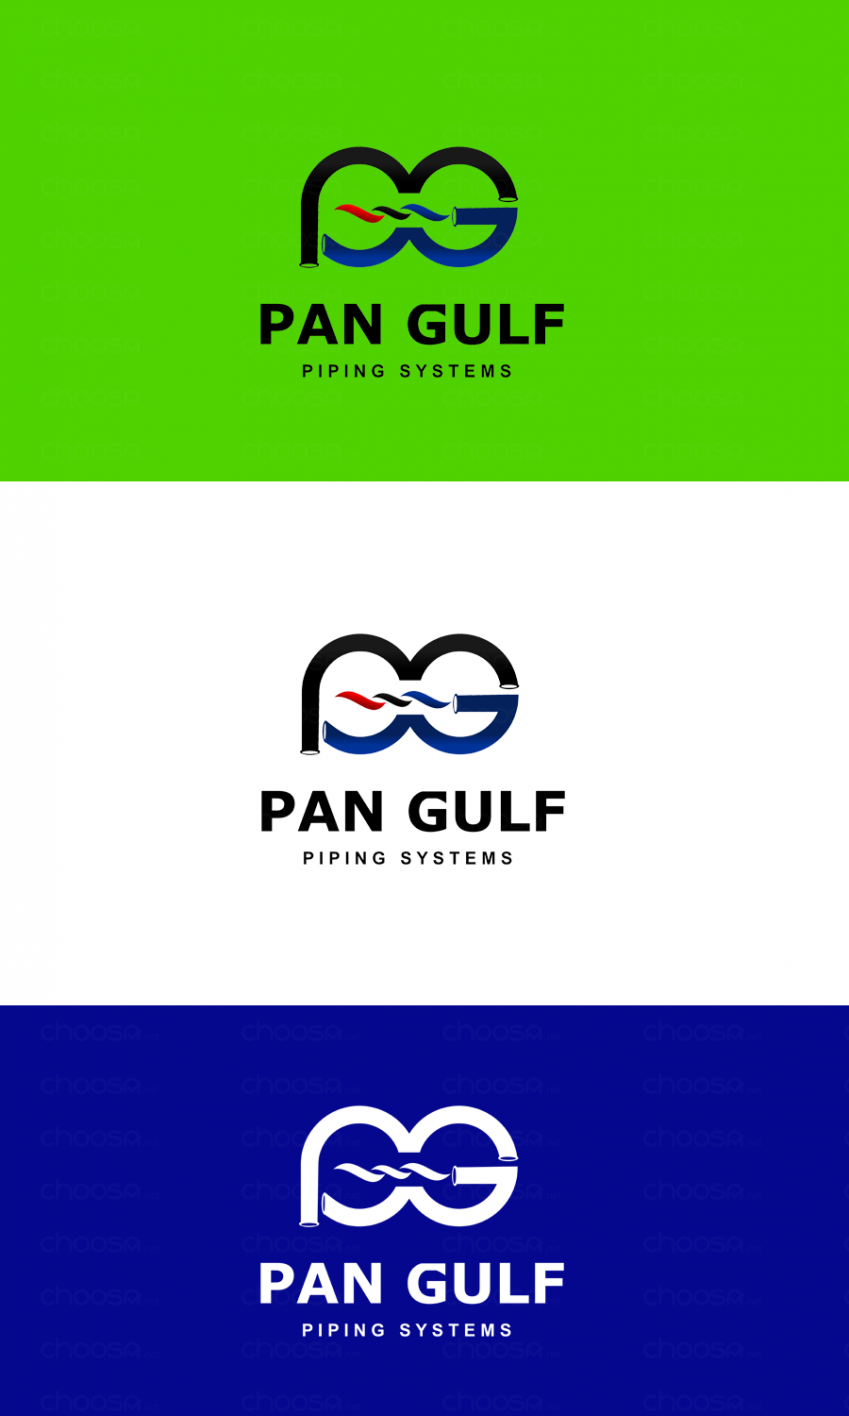 PAN GULF great logo